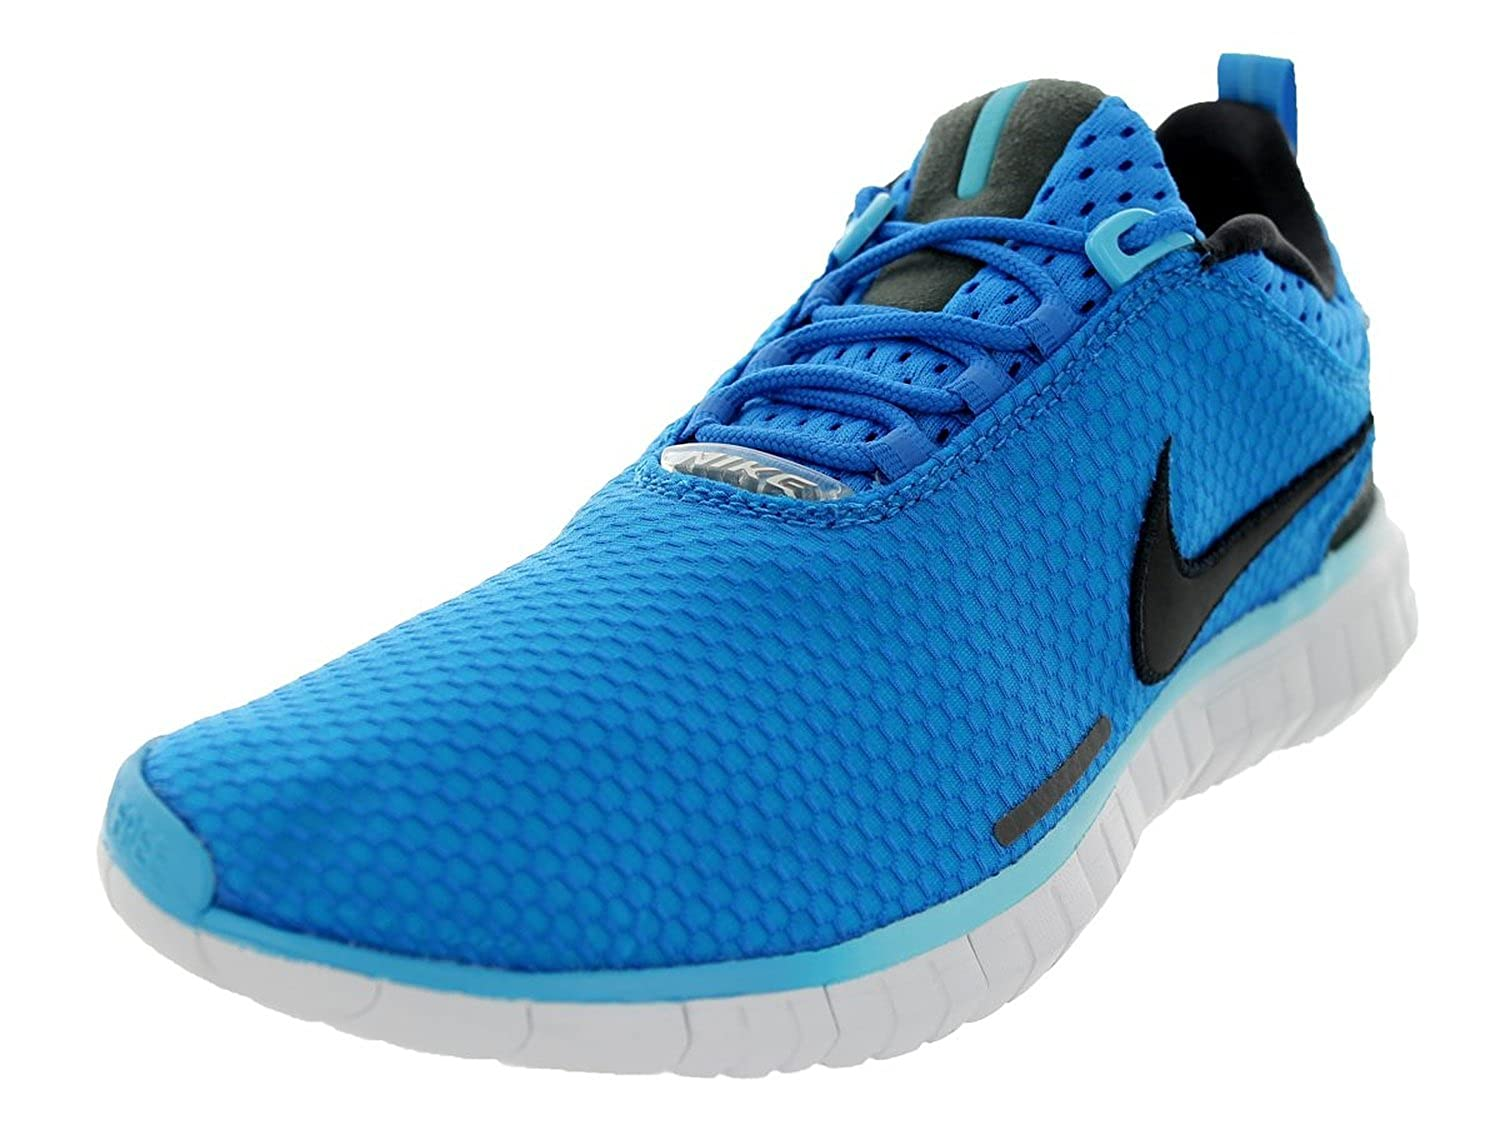 Nike Men\'s Blue Running Shoes - 7: Buy Online at Low Prices in ...